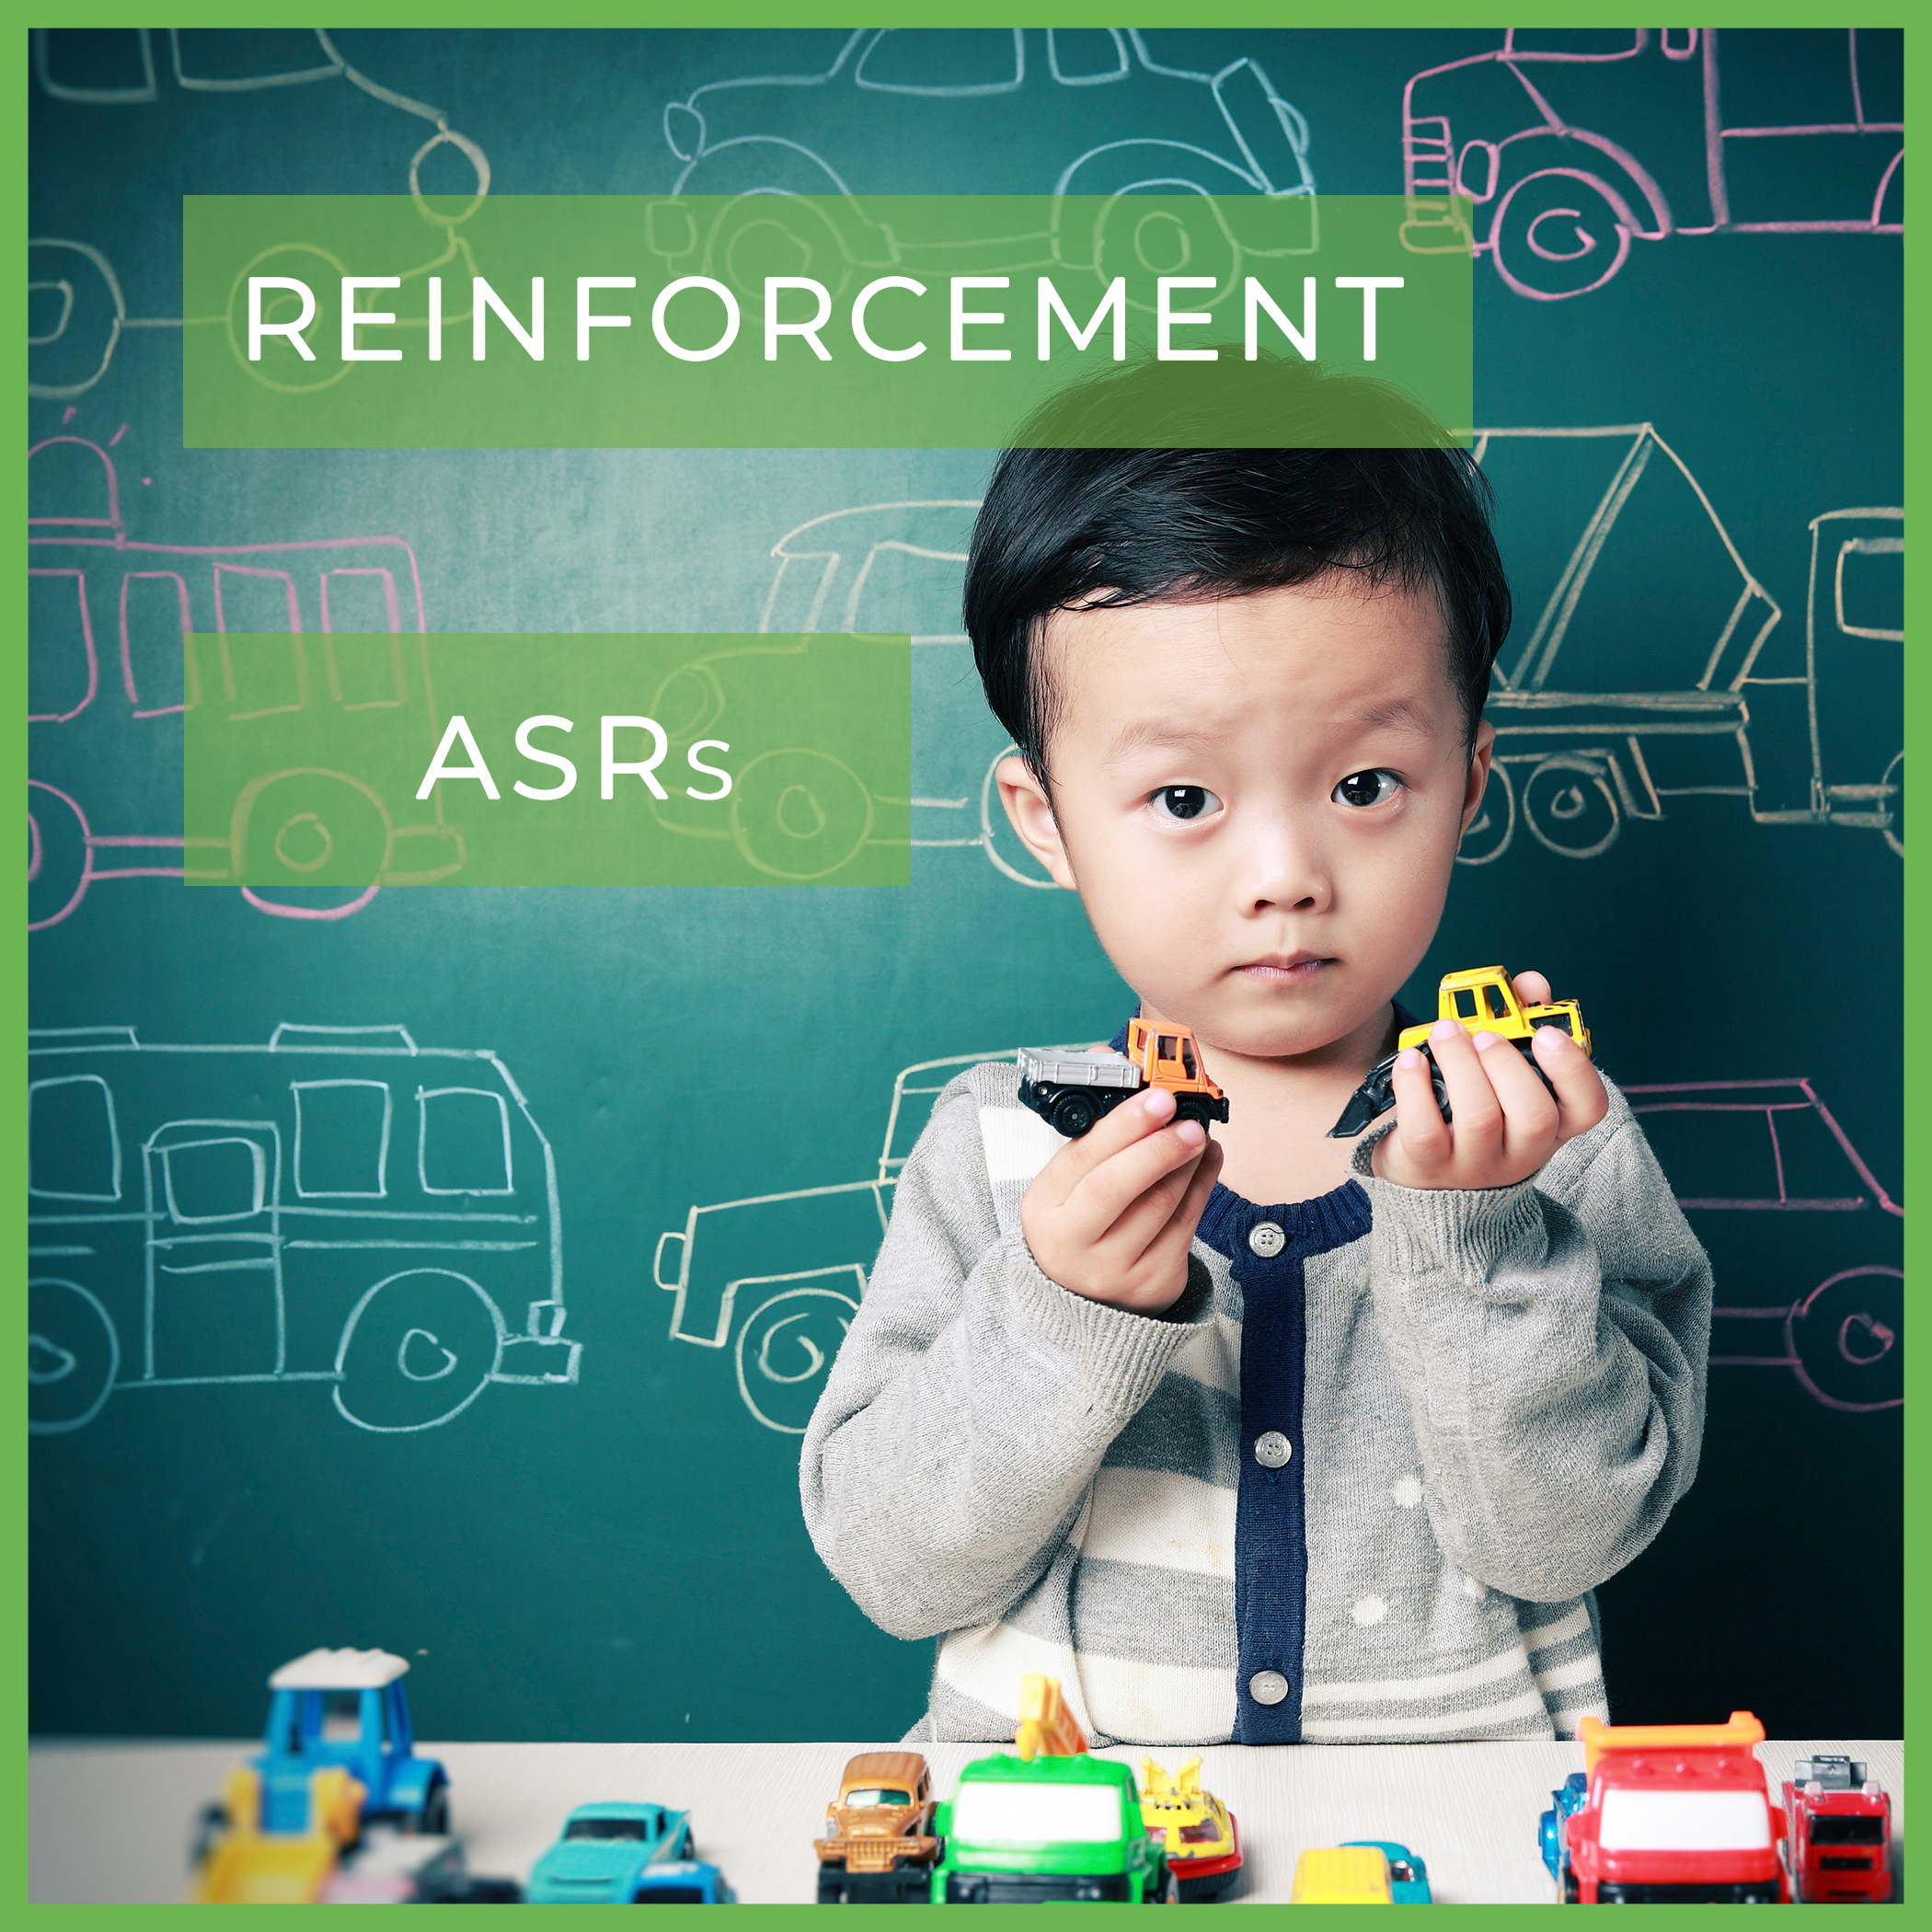 reinforcement-ASRs-aba-therapy-autism-cultivate.png